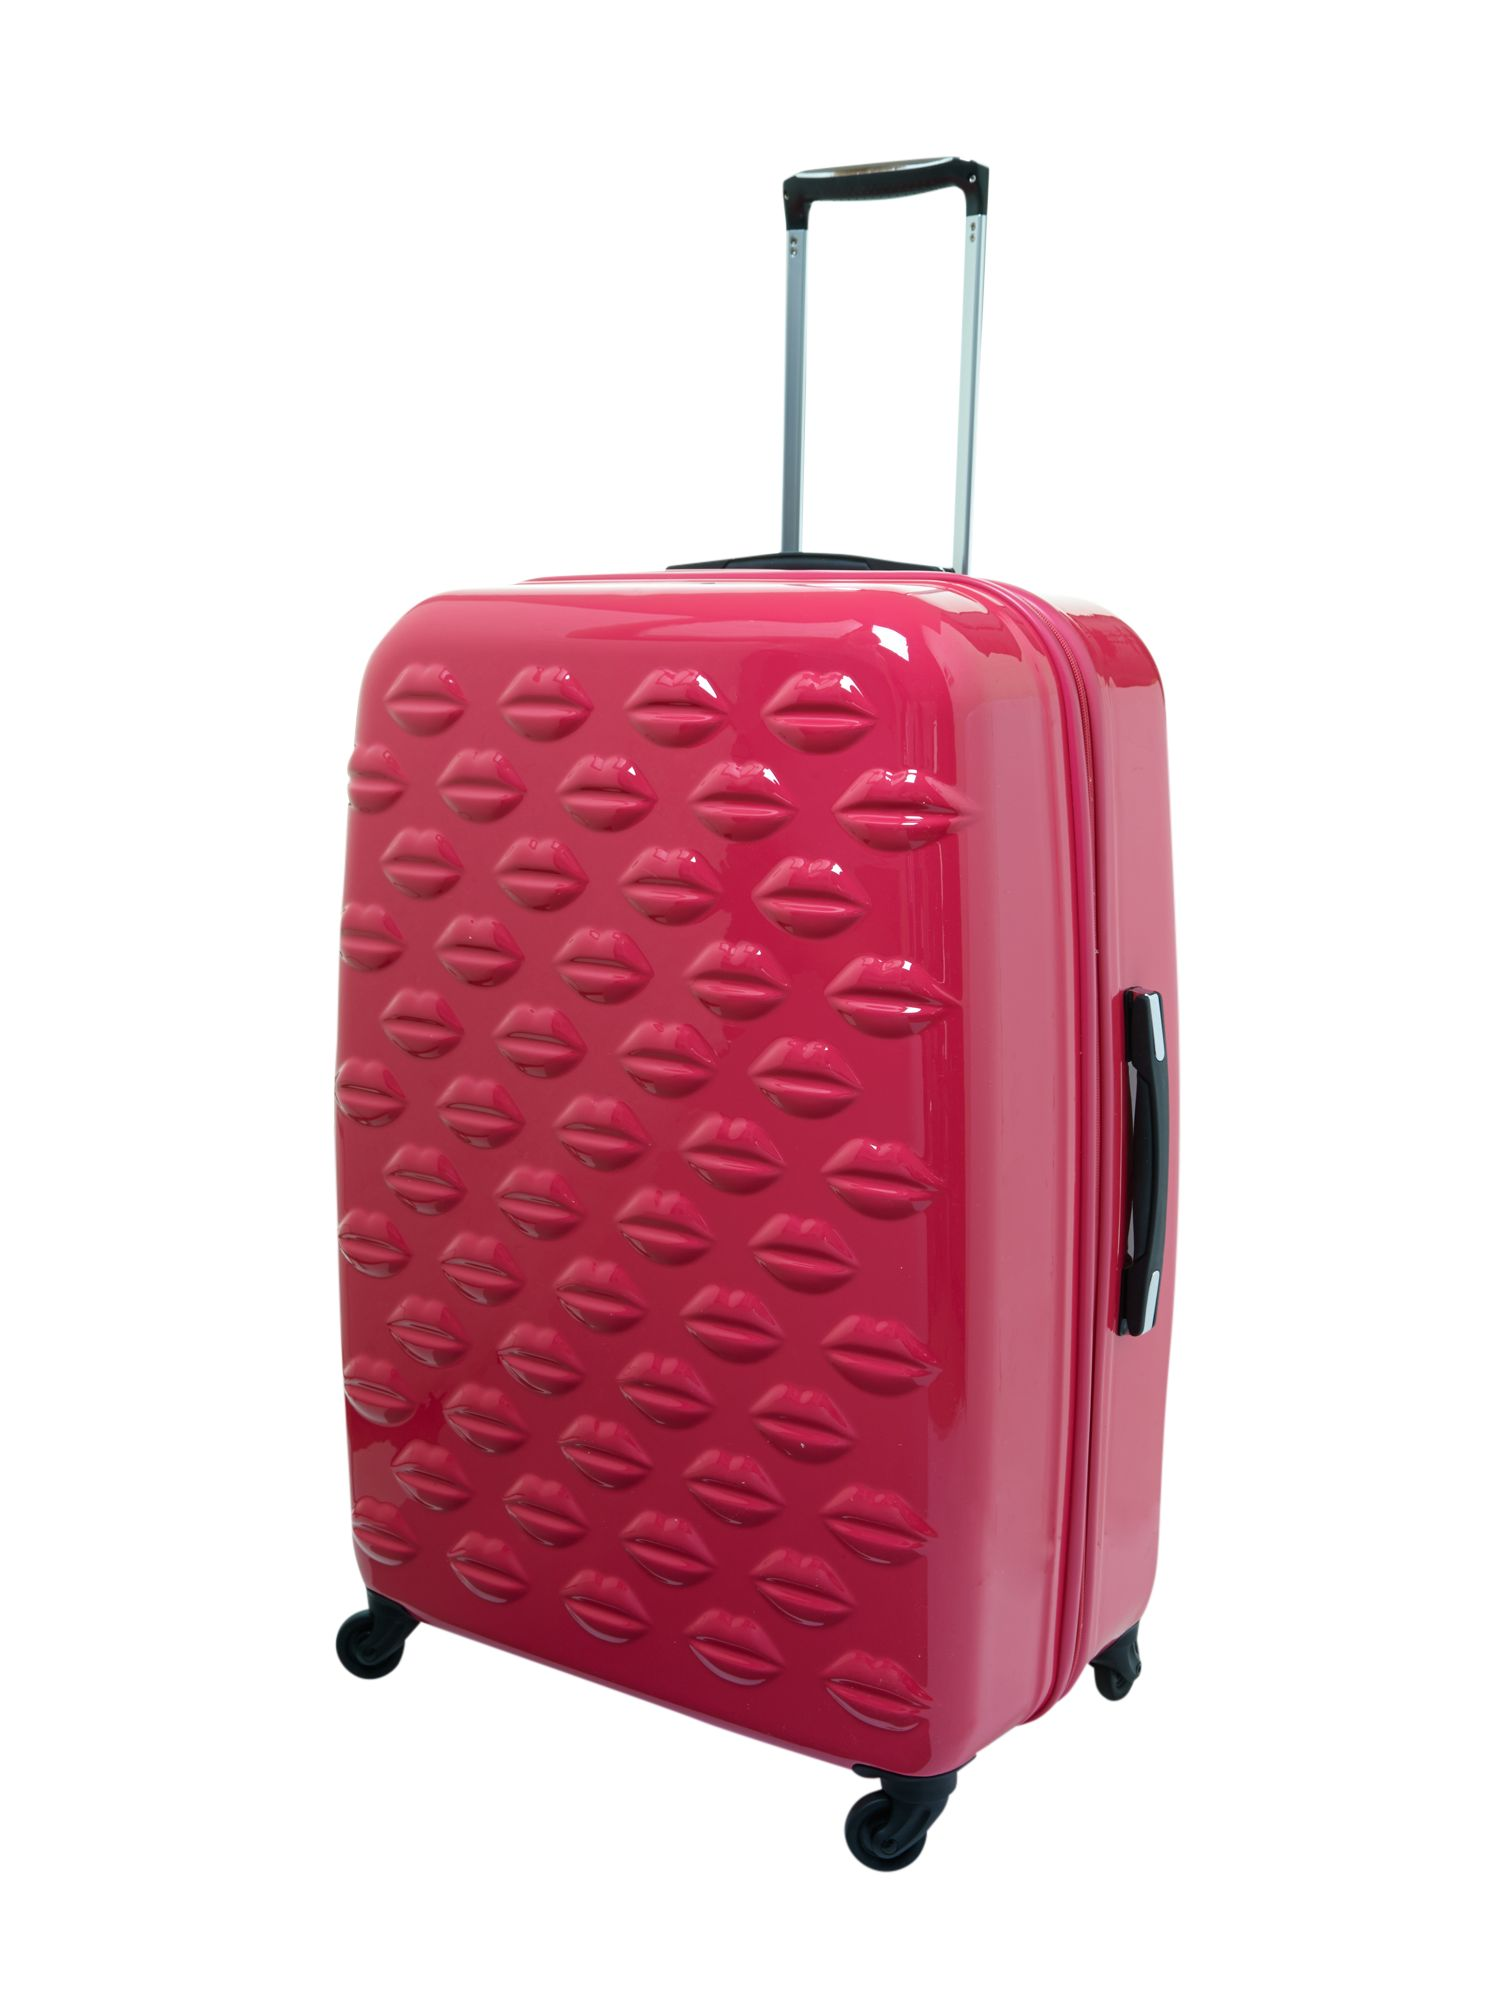 Lulu Lips pink 71cm 4 wheel case light weight